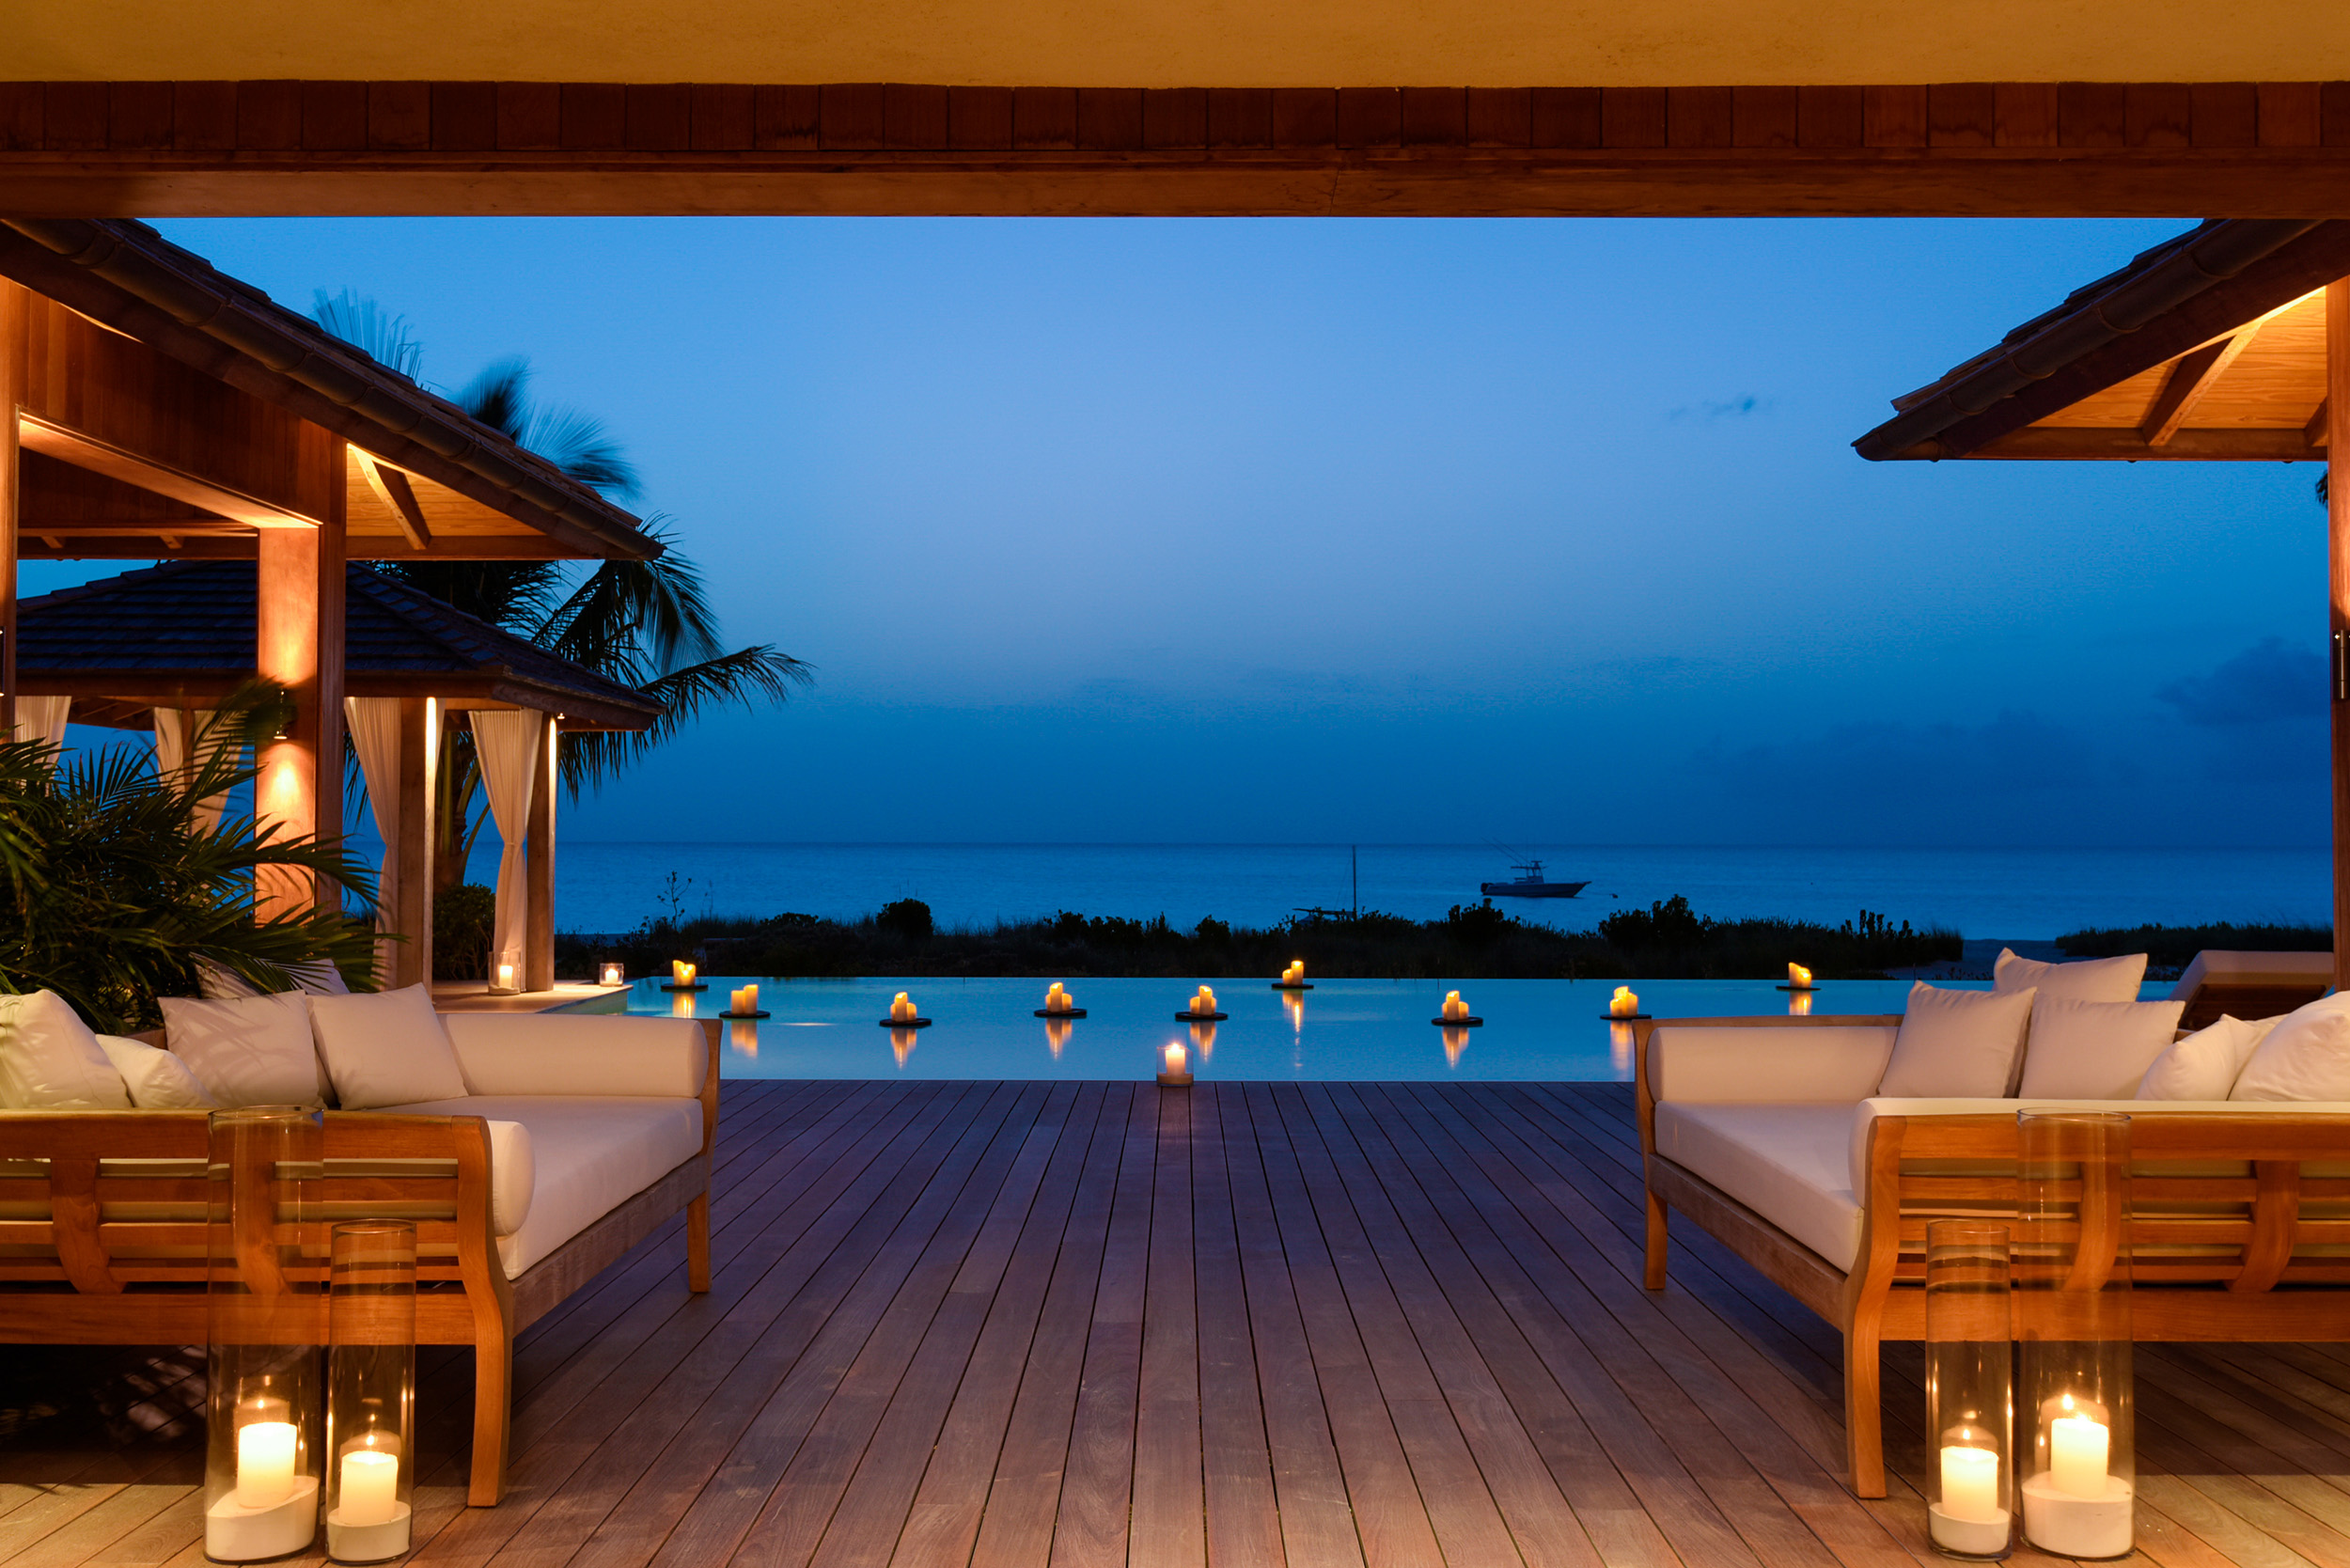 Serenity - evening view of the deck